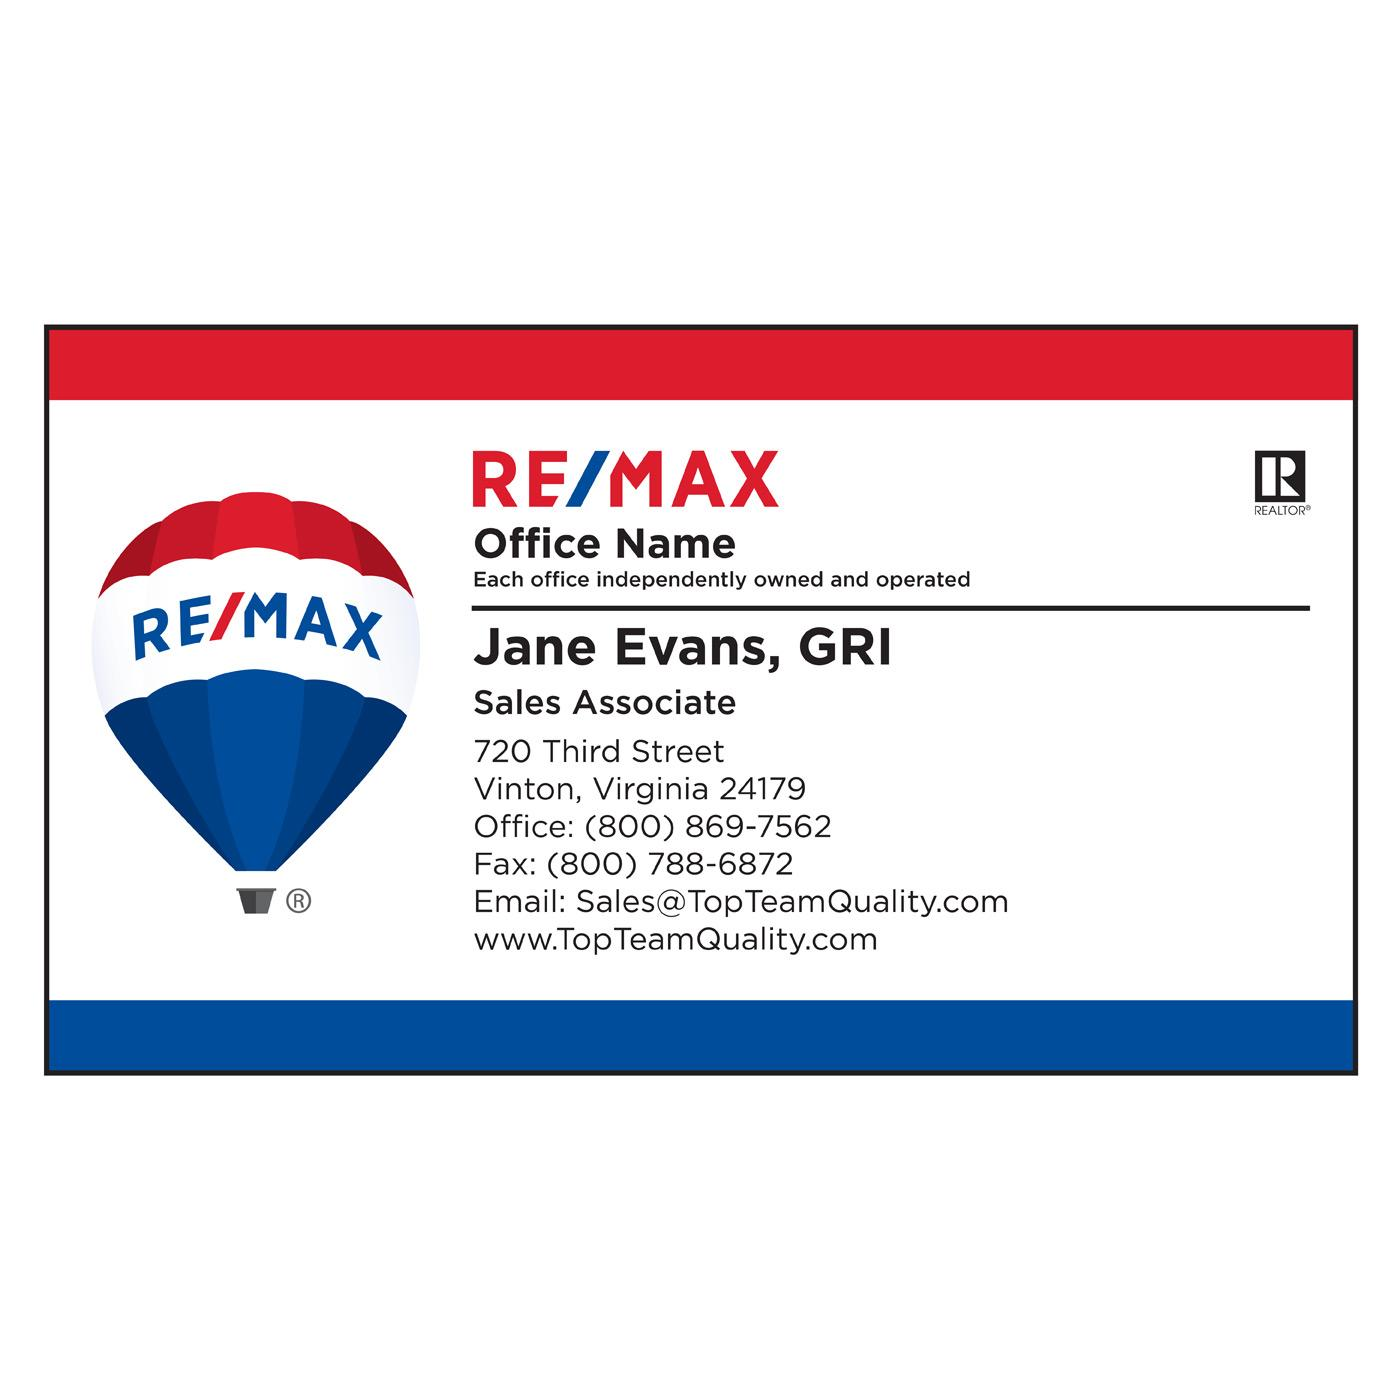 RE/MAX Bars Standard Business Card